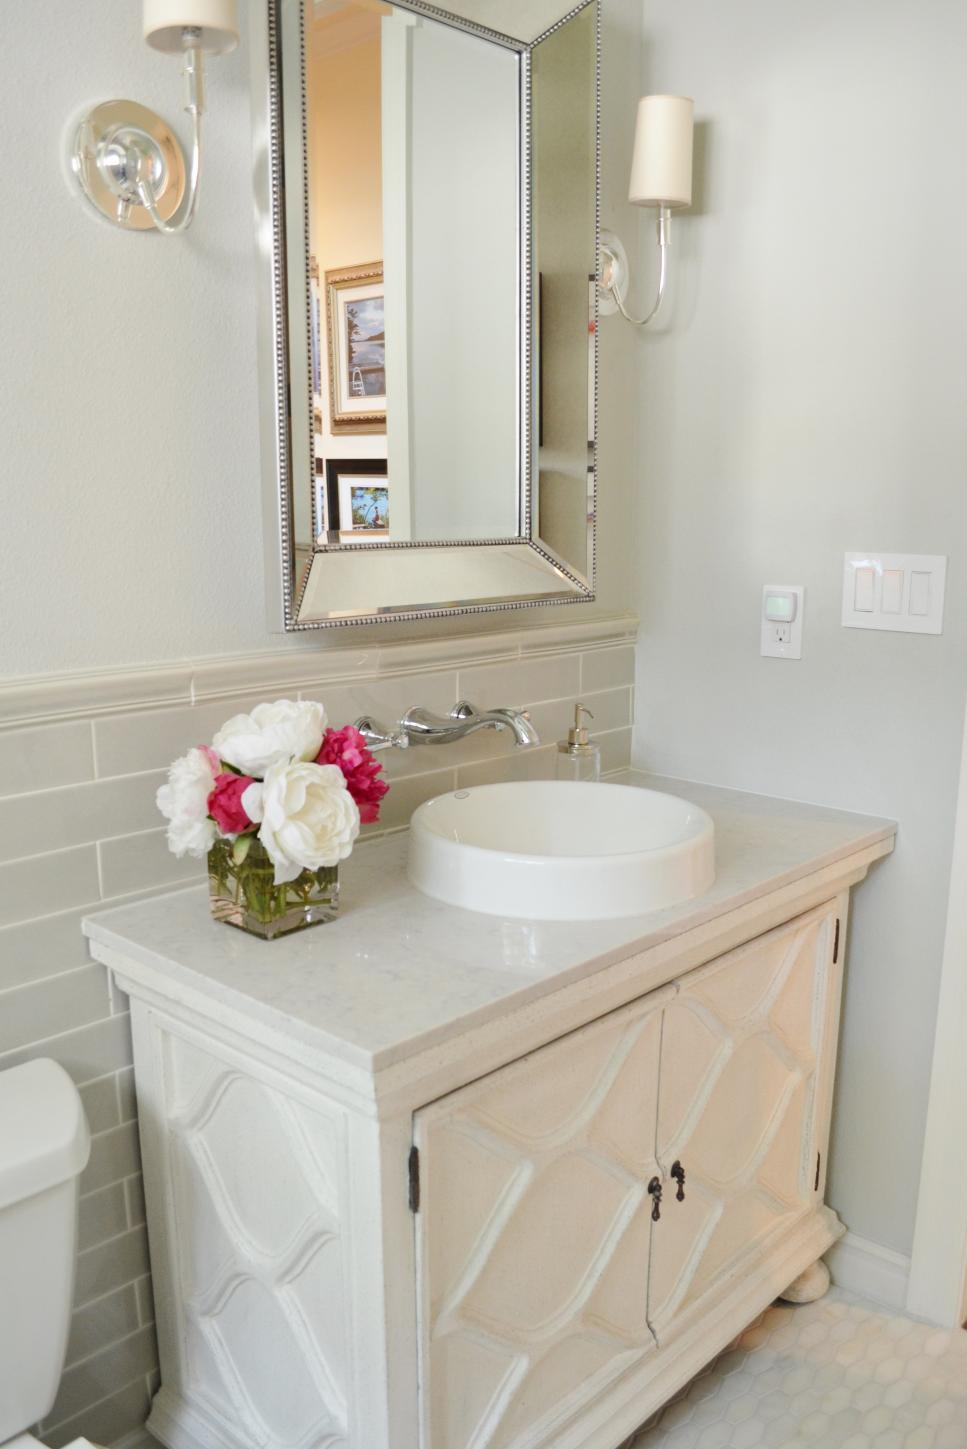 Before and after bathroom remodels on a budget hgtv for Hgtv small bathroom design ideas